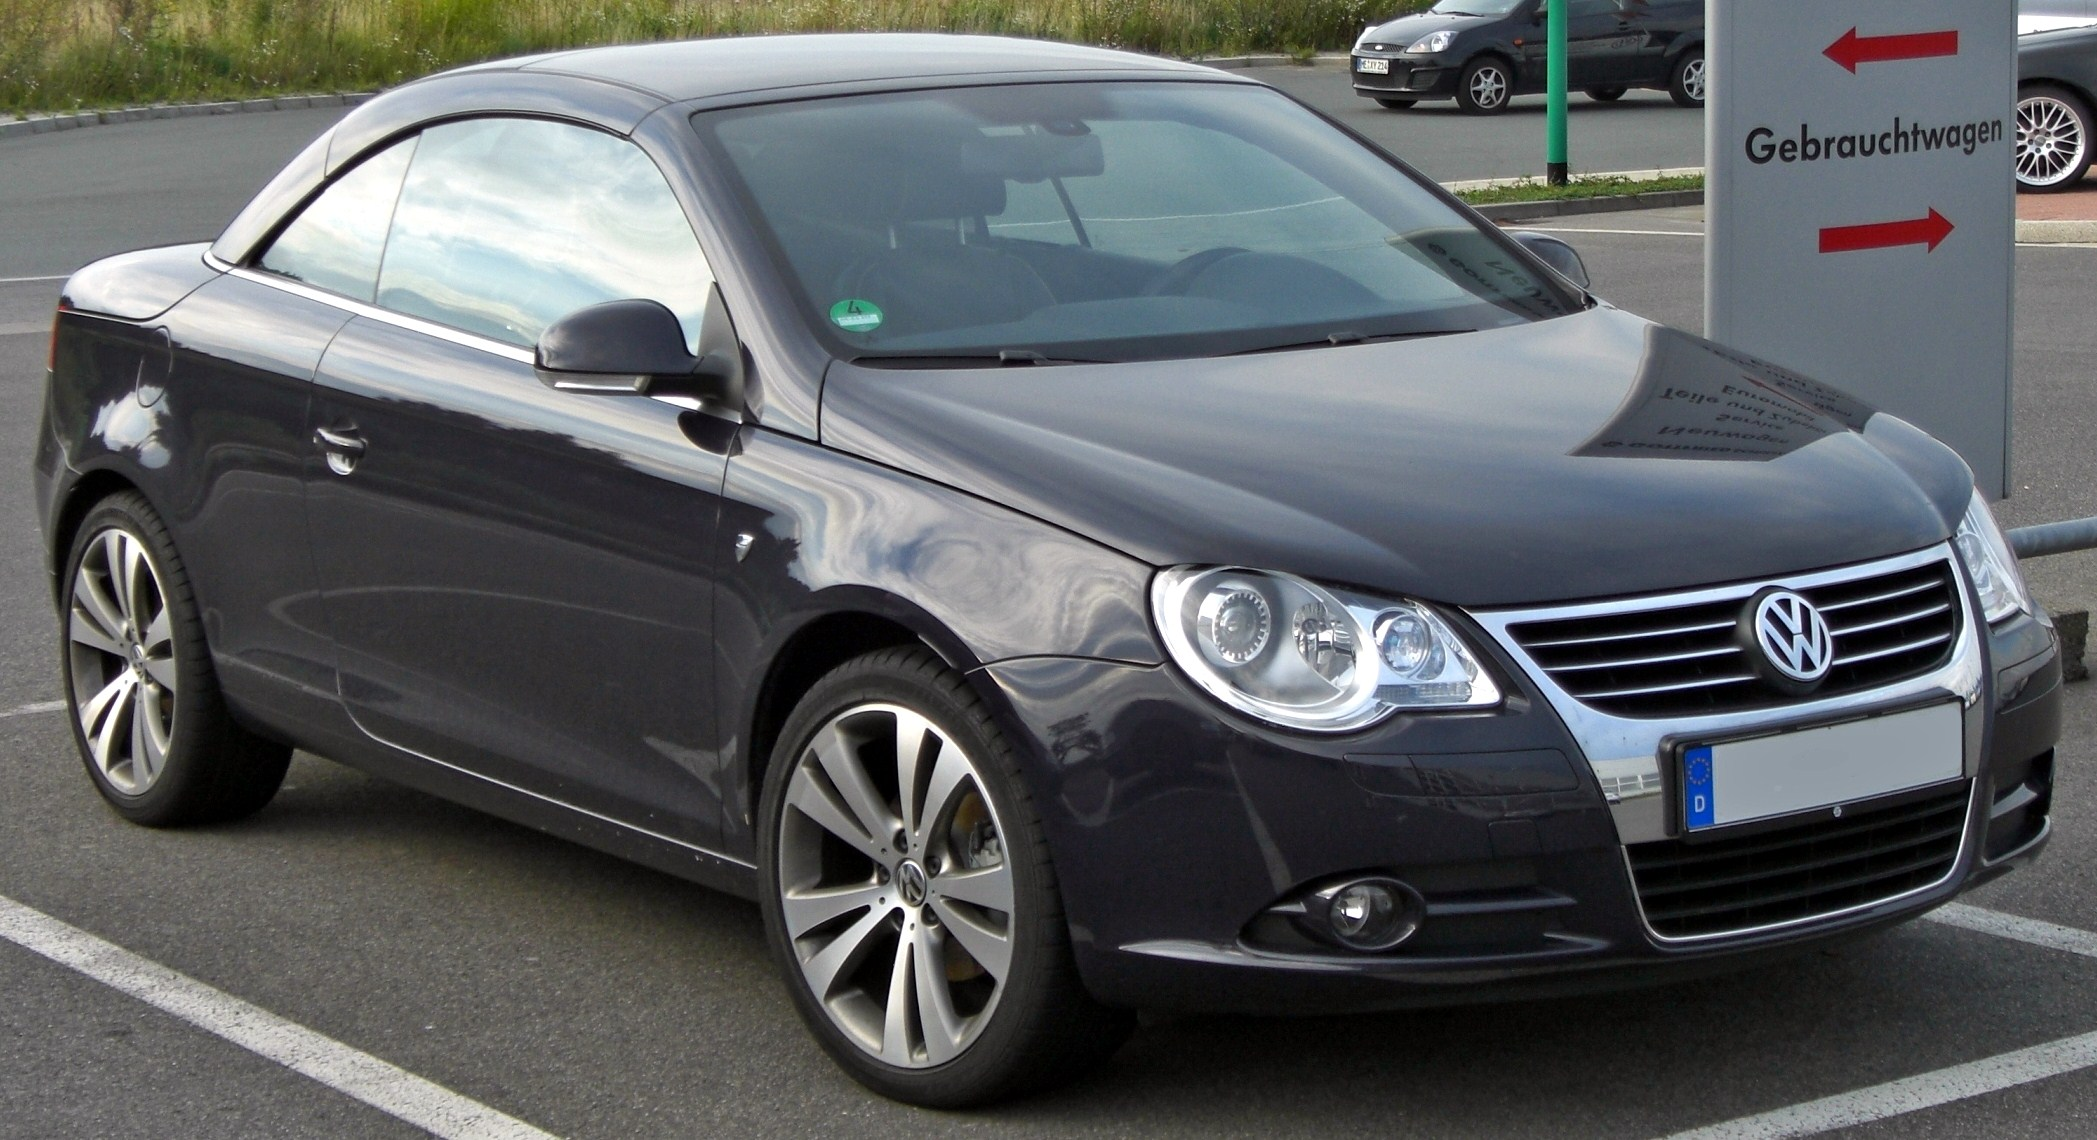 File:VW Eos front-3.JPG - Wikimedia Commons